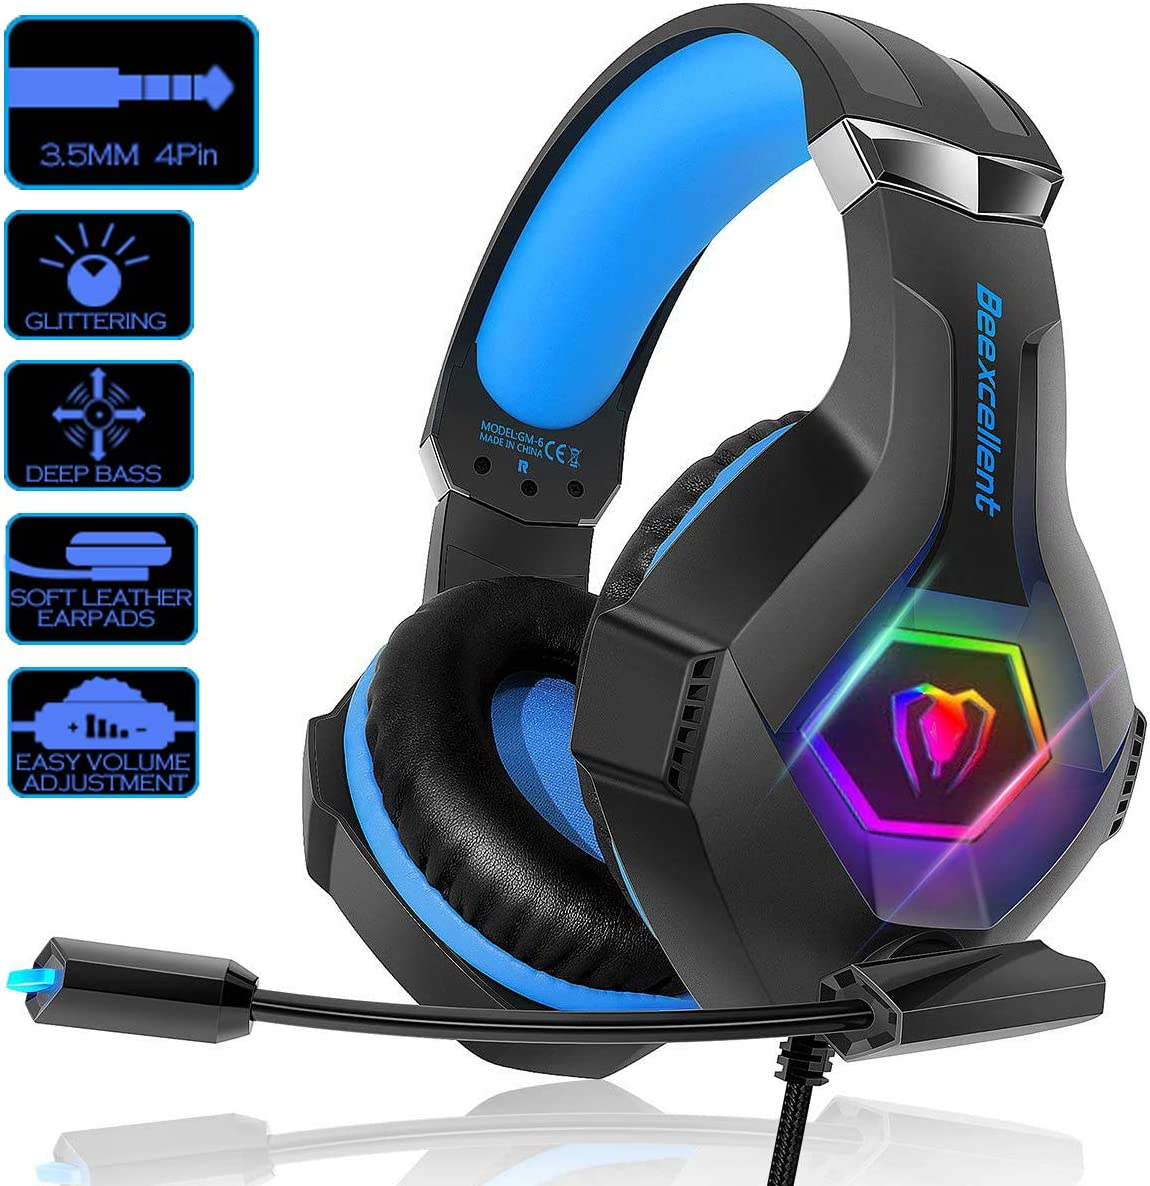 SVYHUOK PS4 Gaming Headset with mic, Over-Ear Headphone for Games, Stereo Surround with Noise Cancelling 3.5mm Jack for PC Laptop